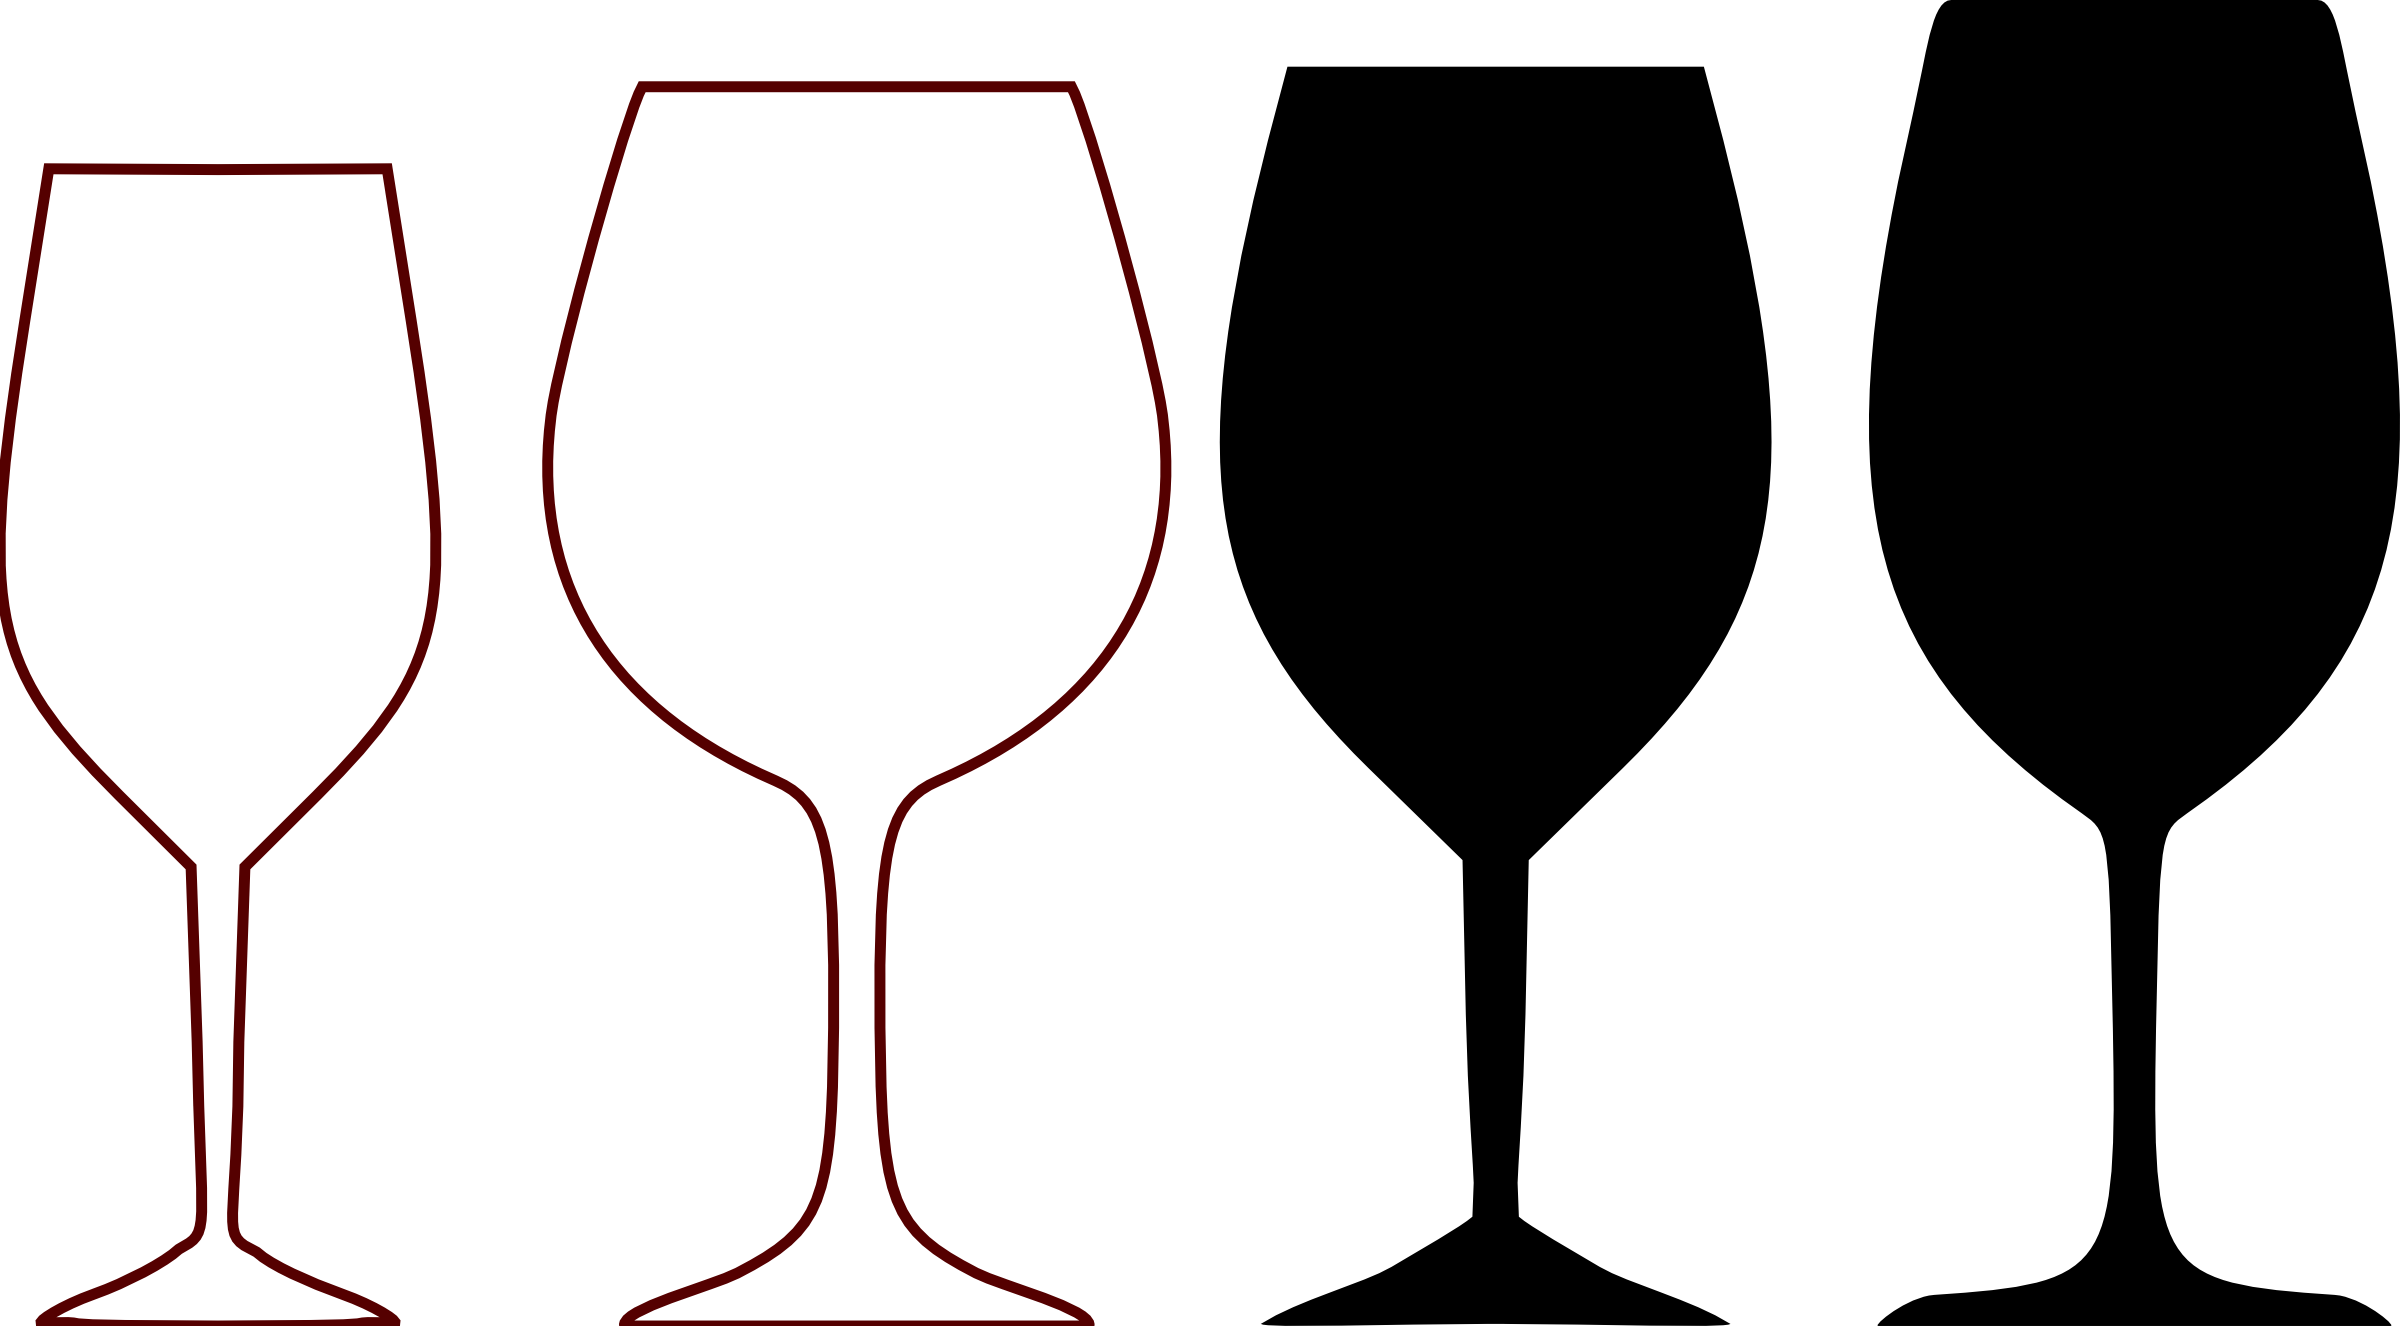 Glass clipart #5, Download drawings